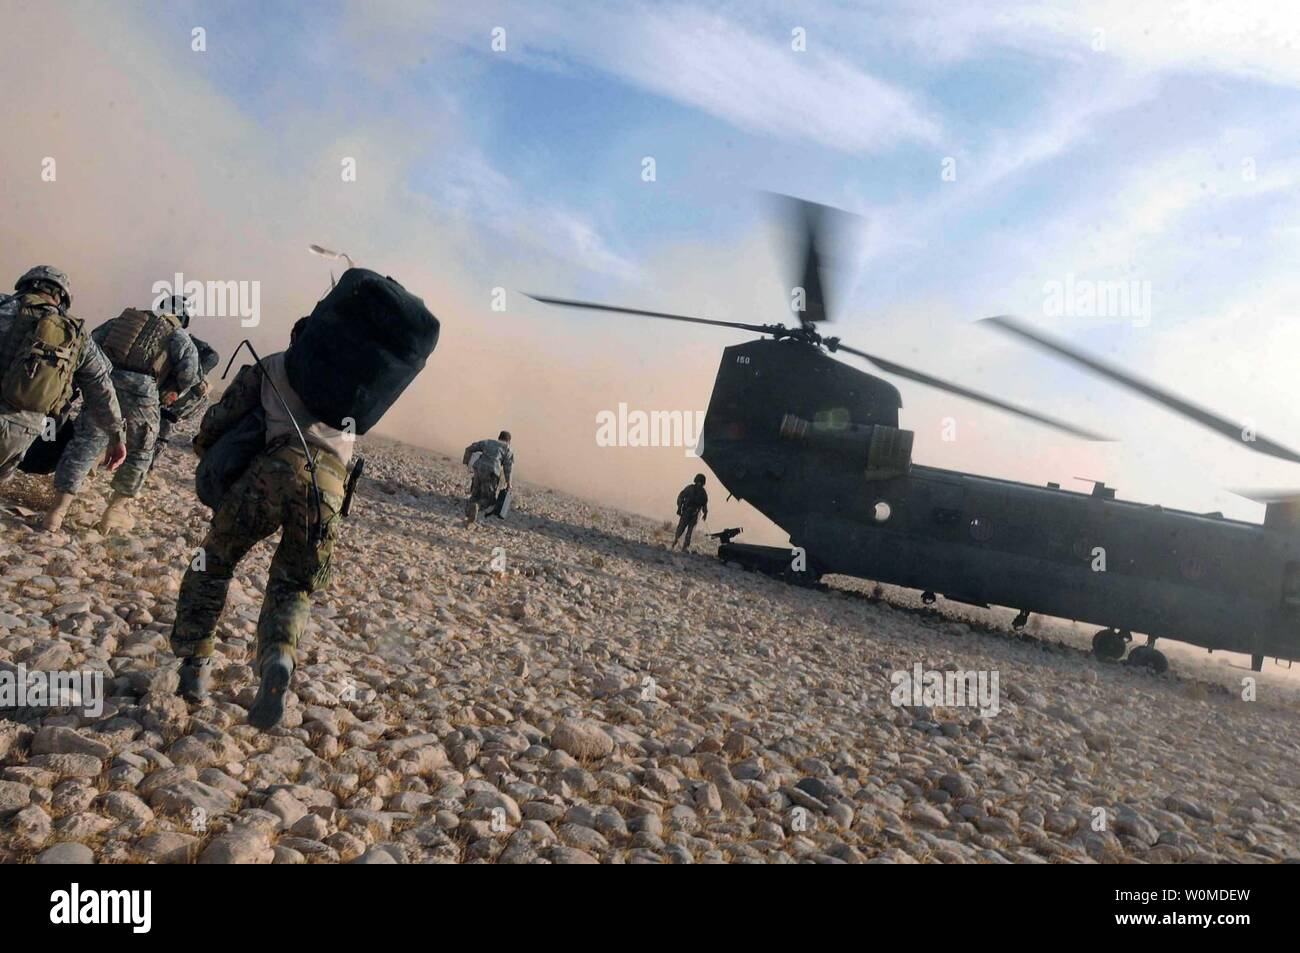 Service members load onto a U.S. Army CH-47 Chinook helicopter, a part of Task Force Eagle Assault, after it lands at a base in southern Afghanistan on November 29, 2008. (UPI Photo/Paul David Ondik/U.S. Army) Stock Photo